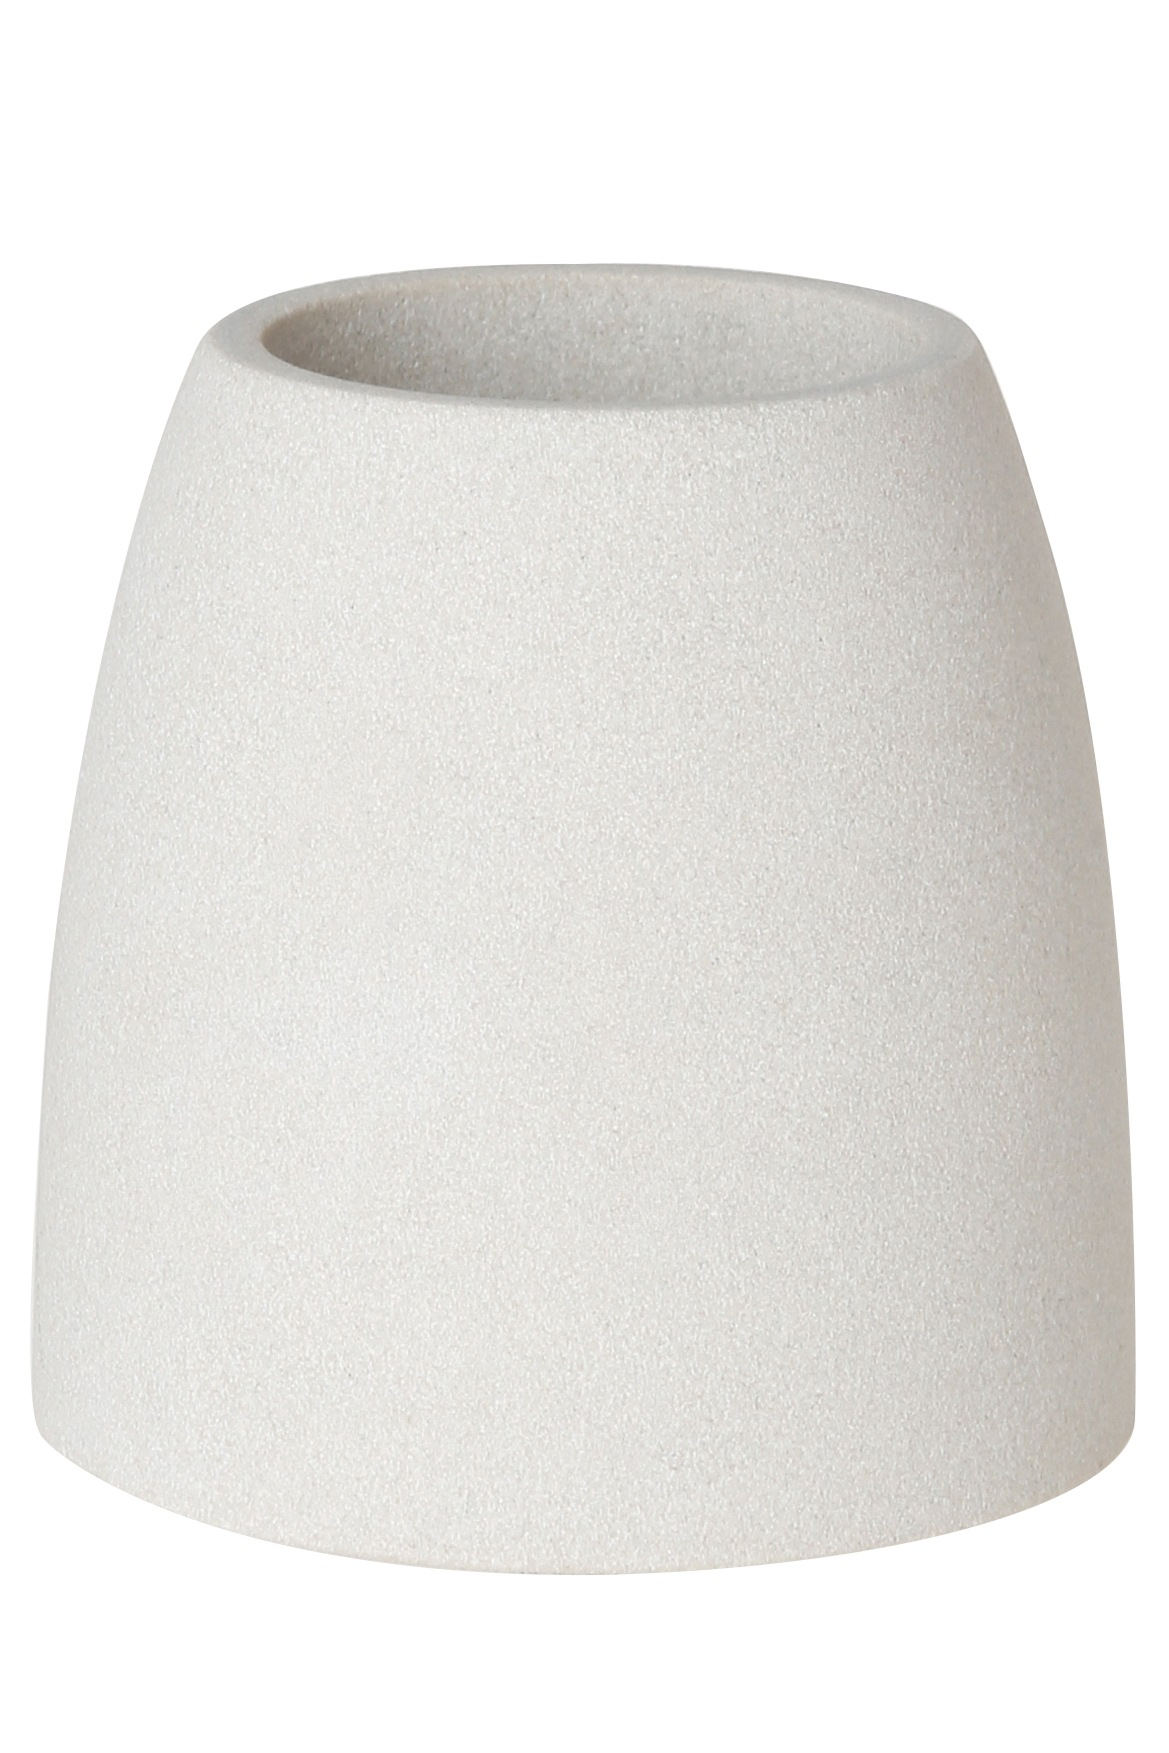 Myer bathroom accessories - Myer Online Categoryname